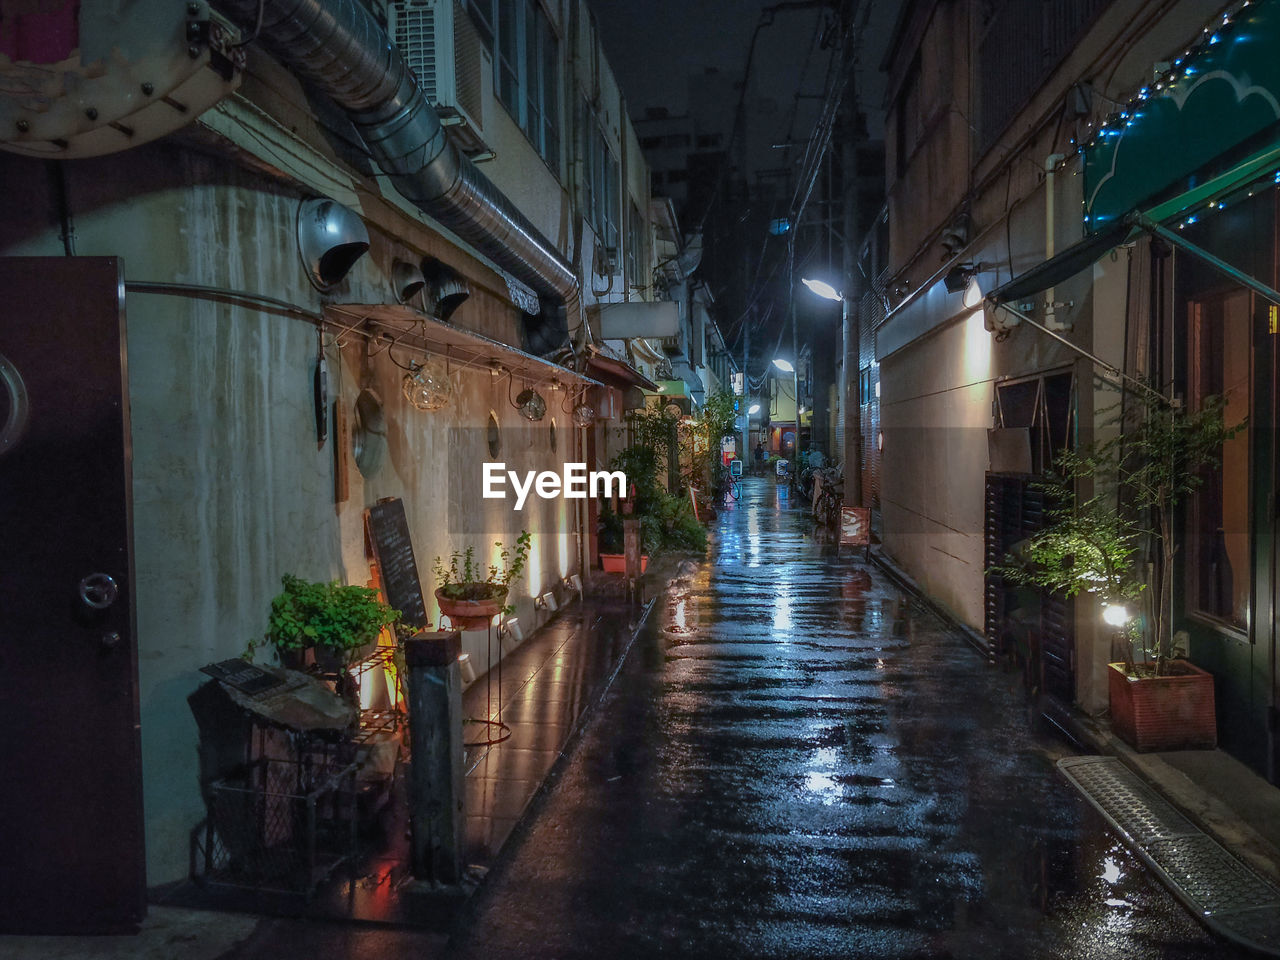 ILLUMINATED ALLEY AMIDST BUILDINGS IN CITY AT NIGHT